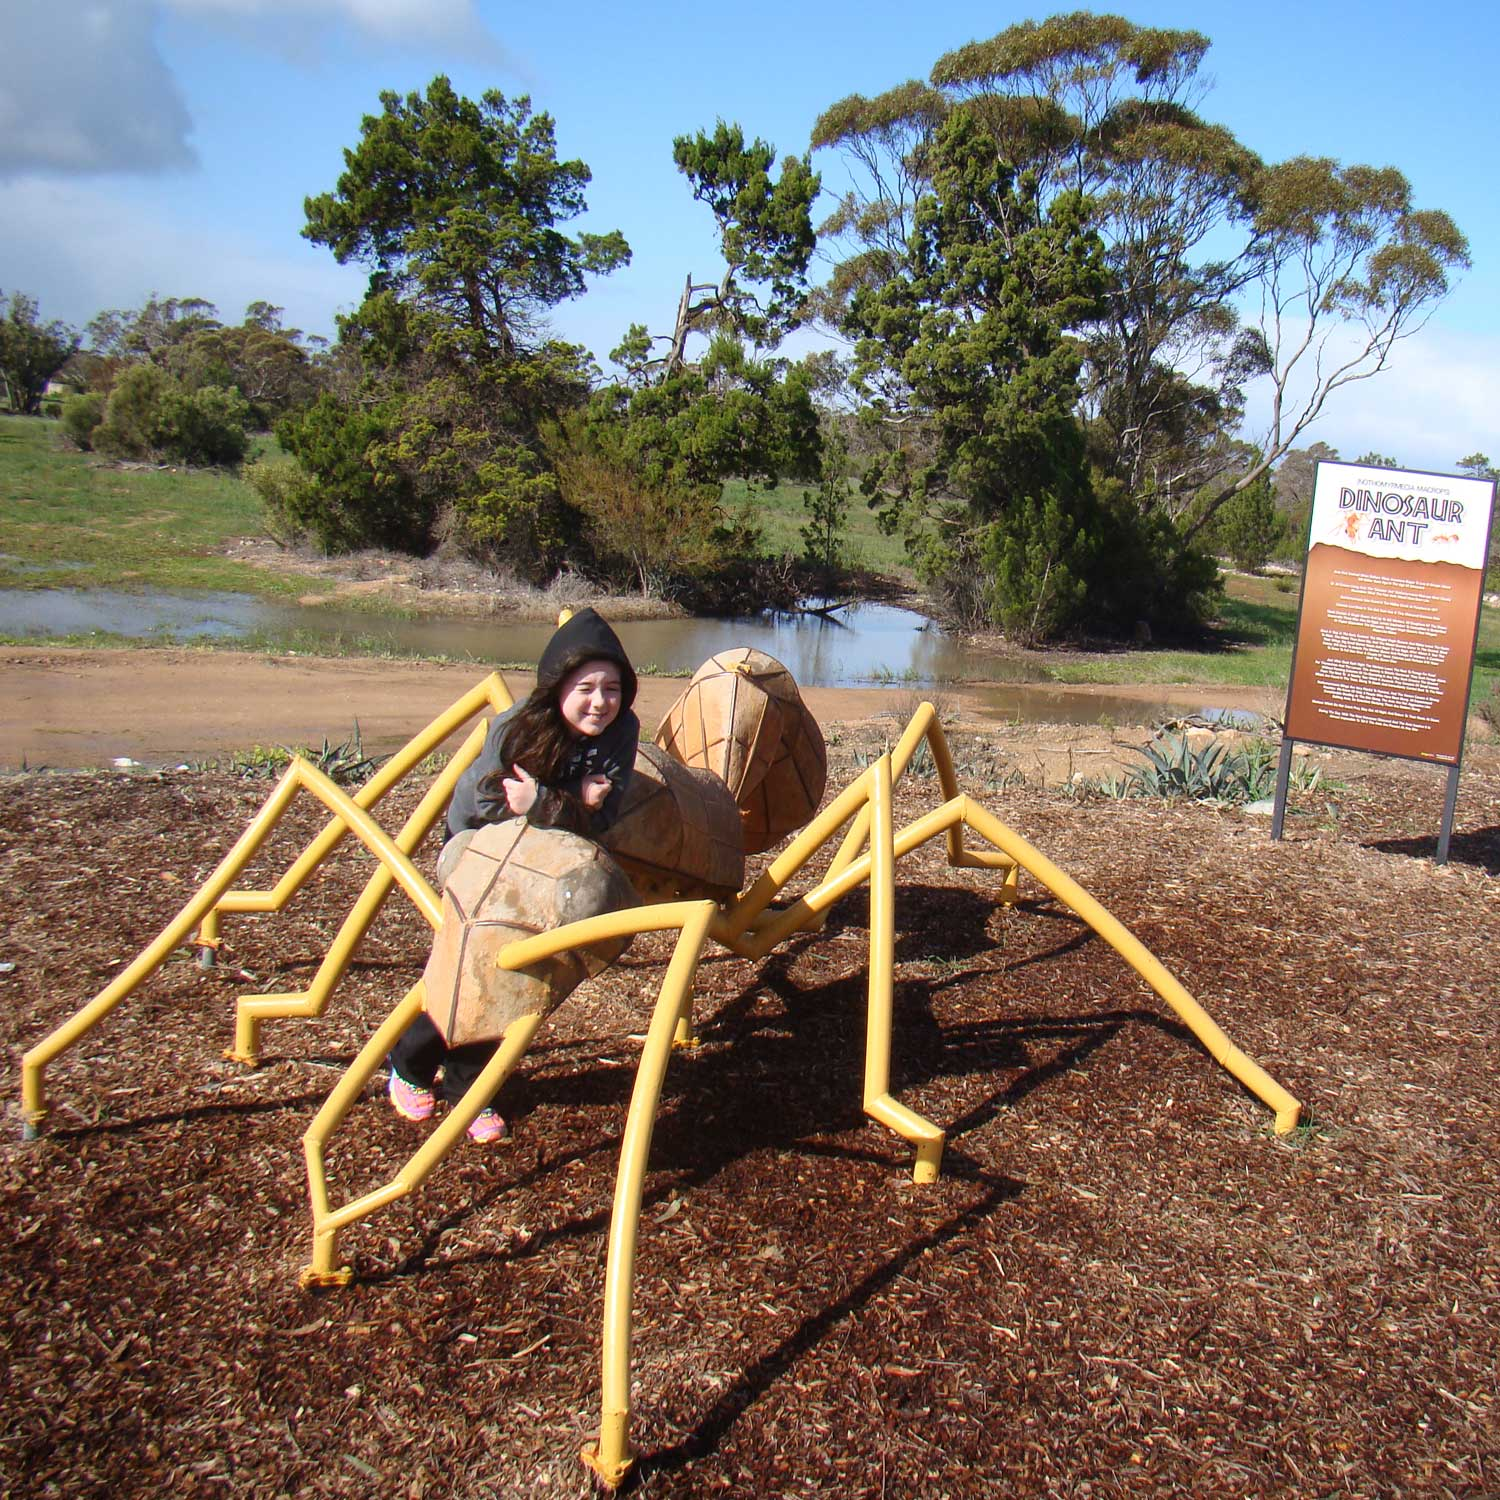 Tookii things to do with kids Big Ant Poochera South Australia one of the outdoor activities for kids